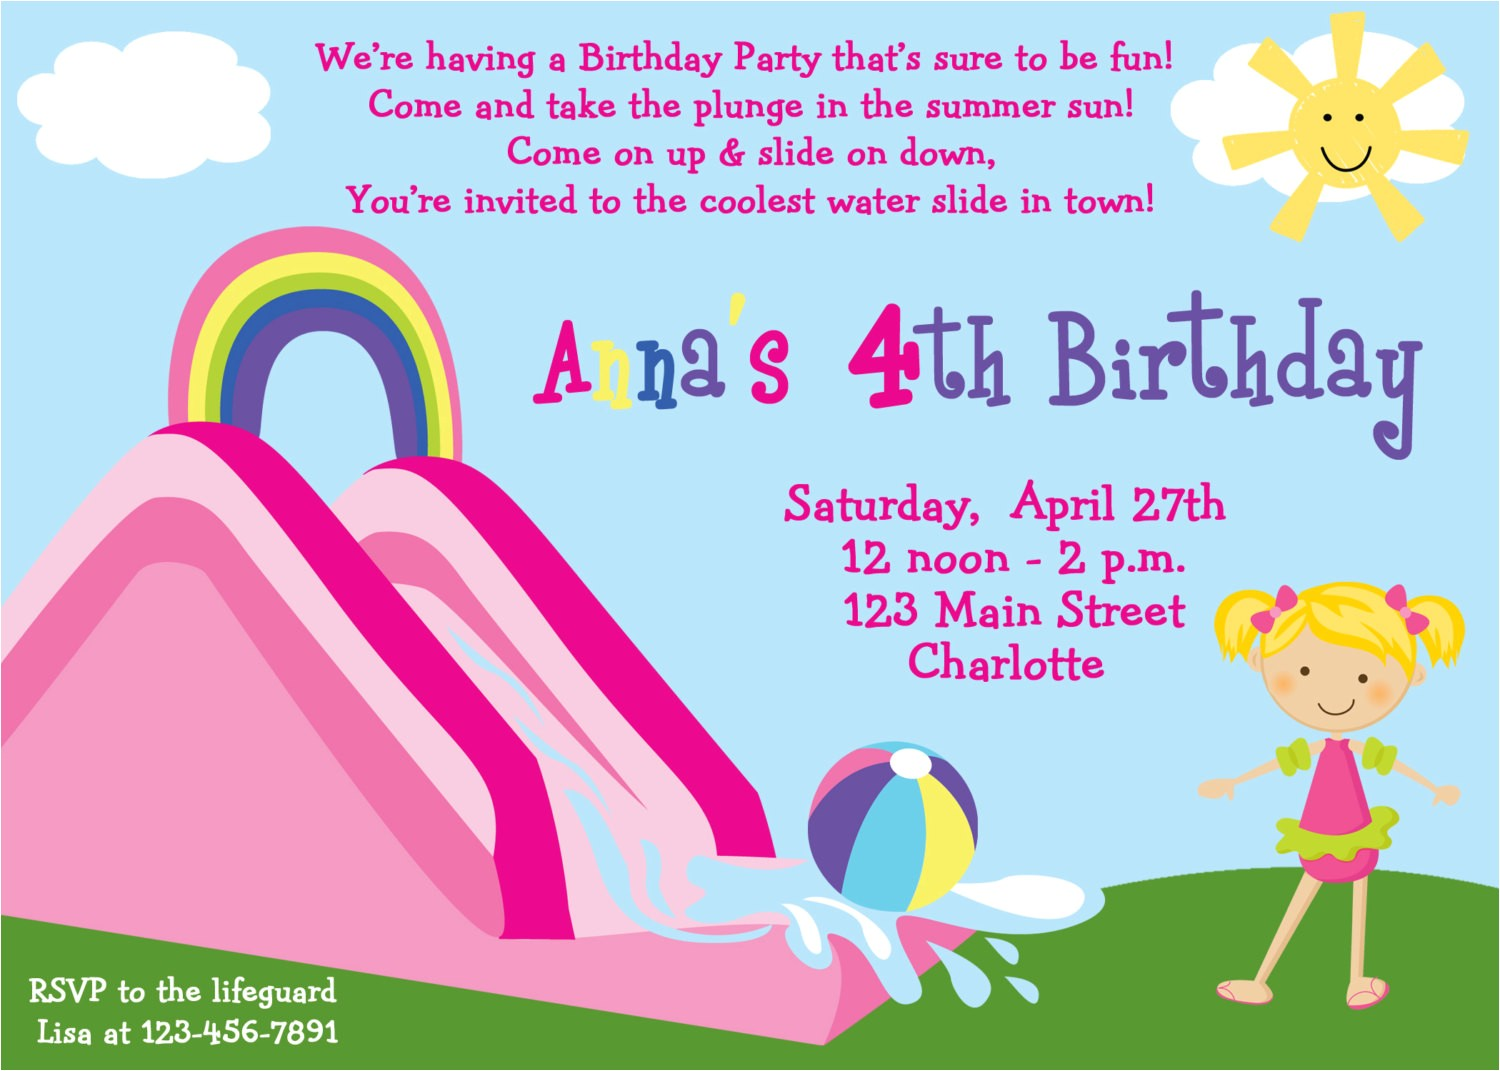 waterslide party birthday invitation